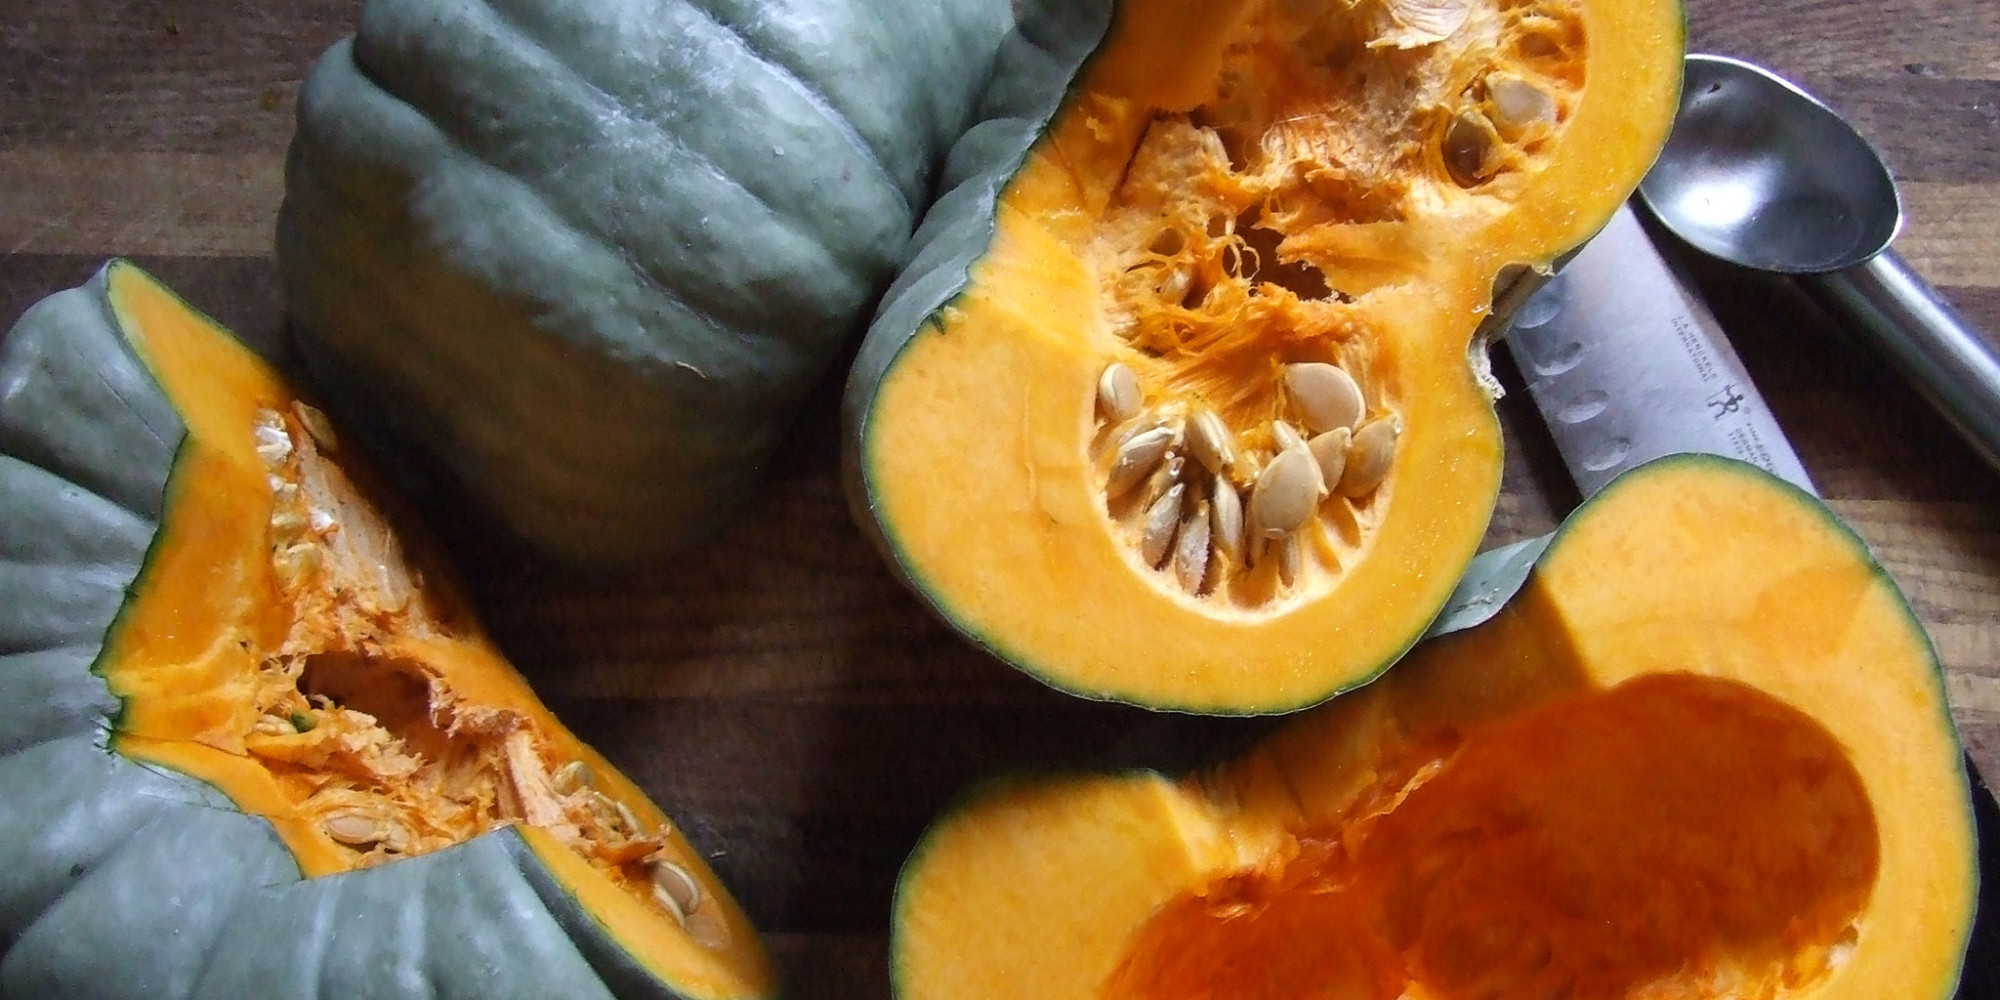 How To Cut, Peel And Eat Every Type Of Winter Squash ...